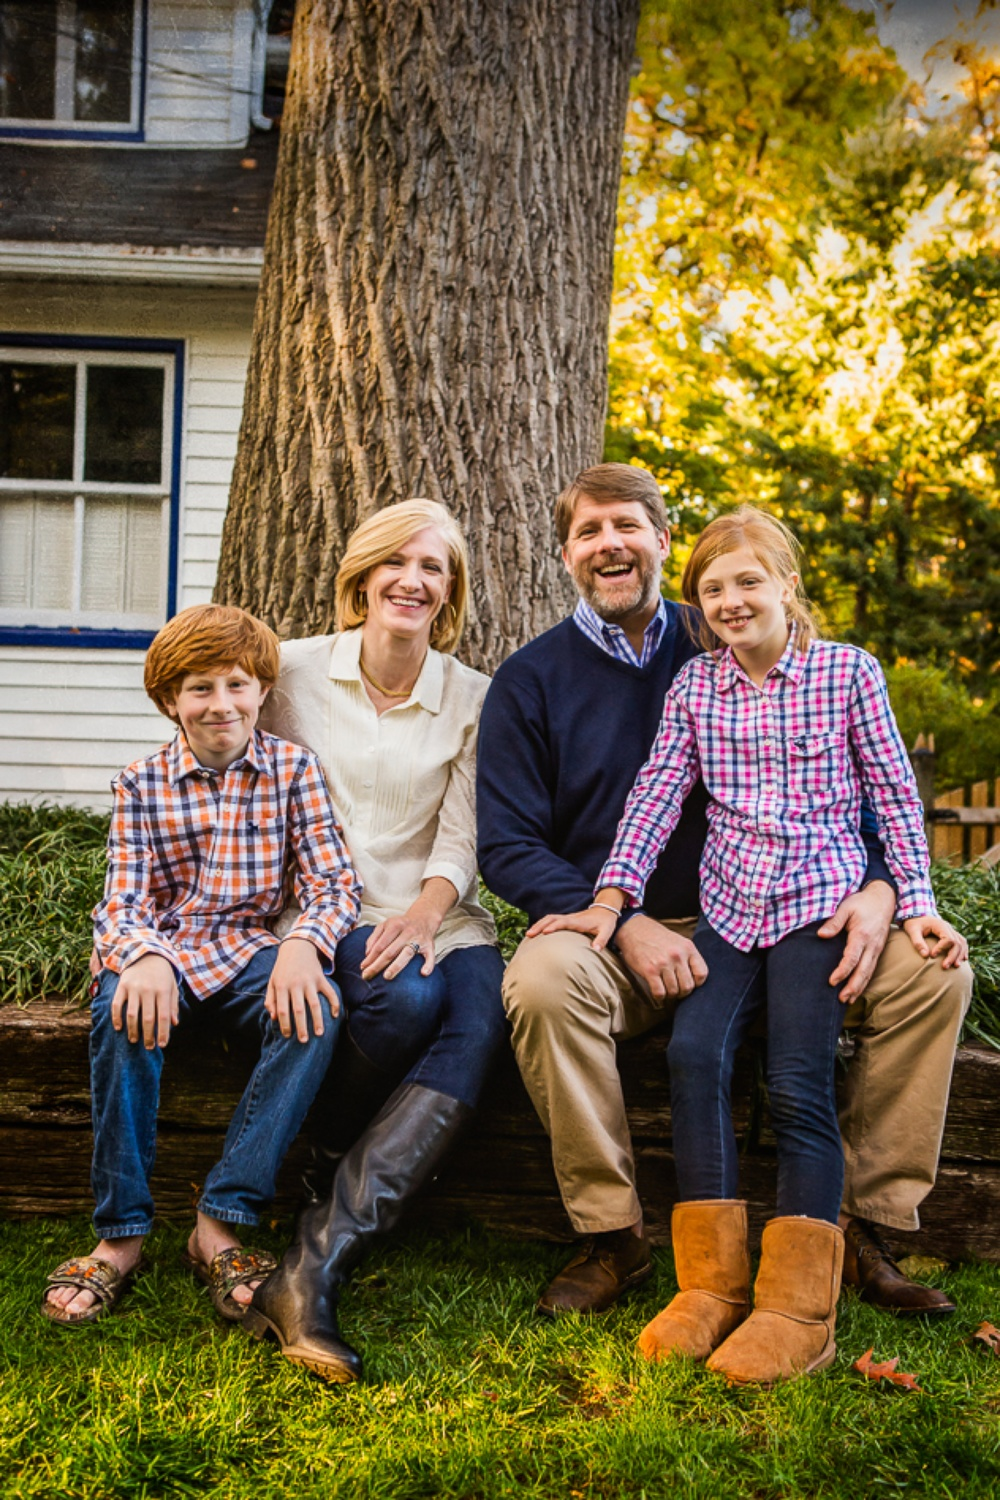 October 2014,Shafer Family,gigi book,shafer album 1,shafer blog,shafer family 1 final,